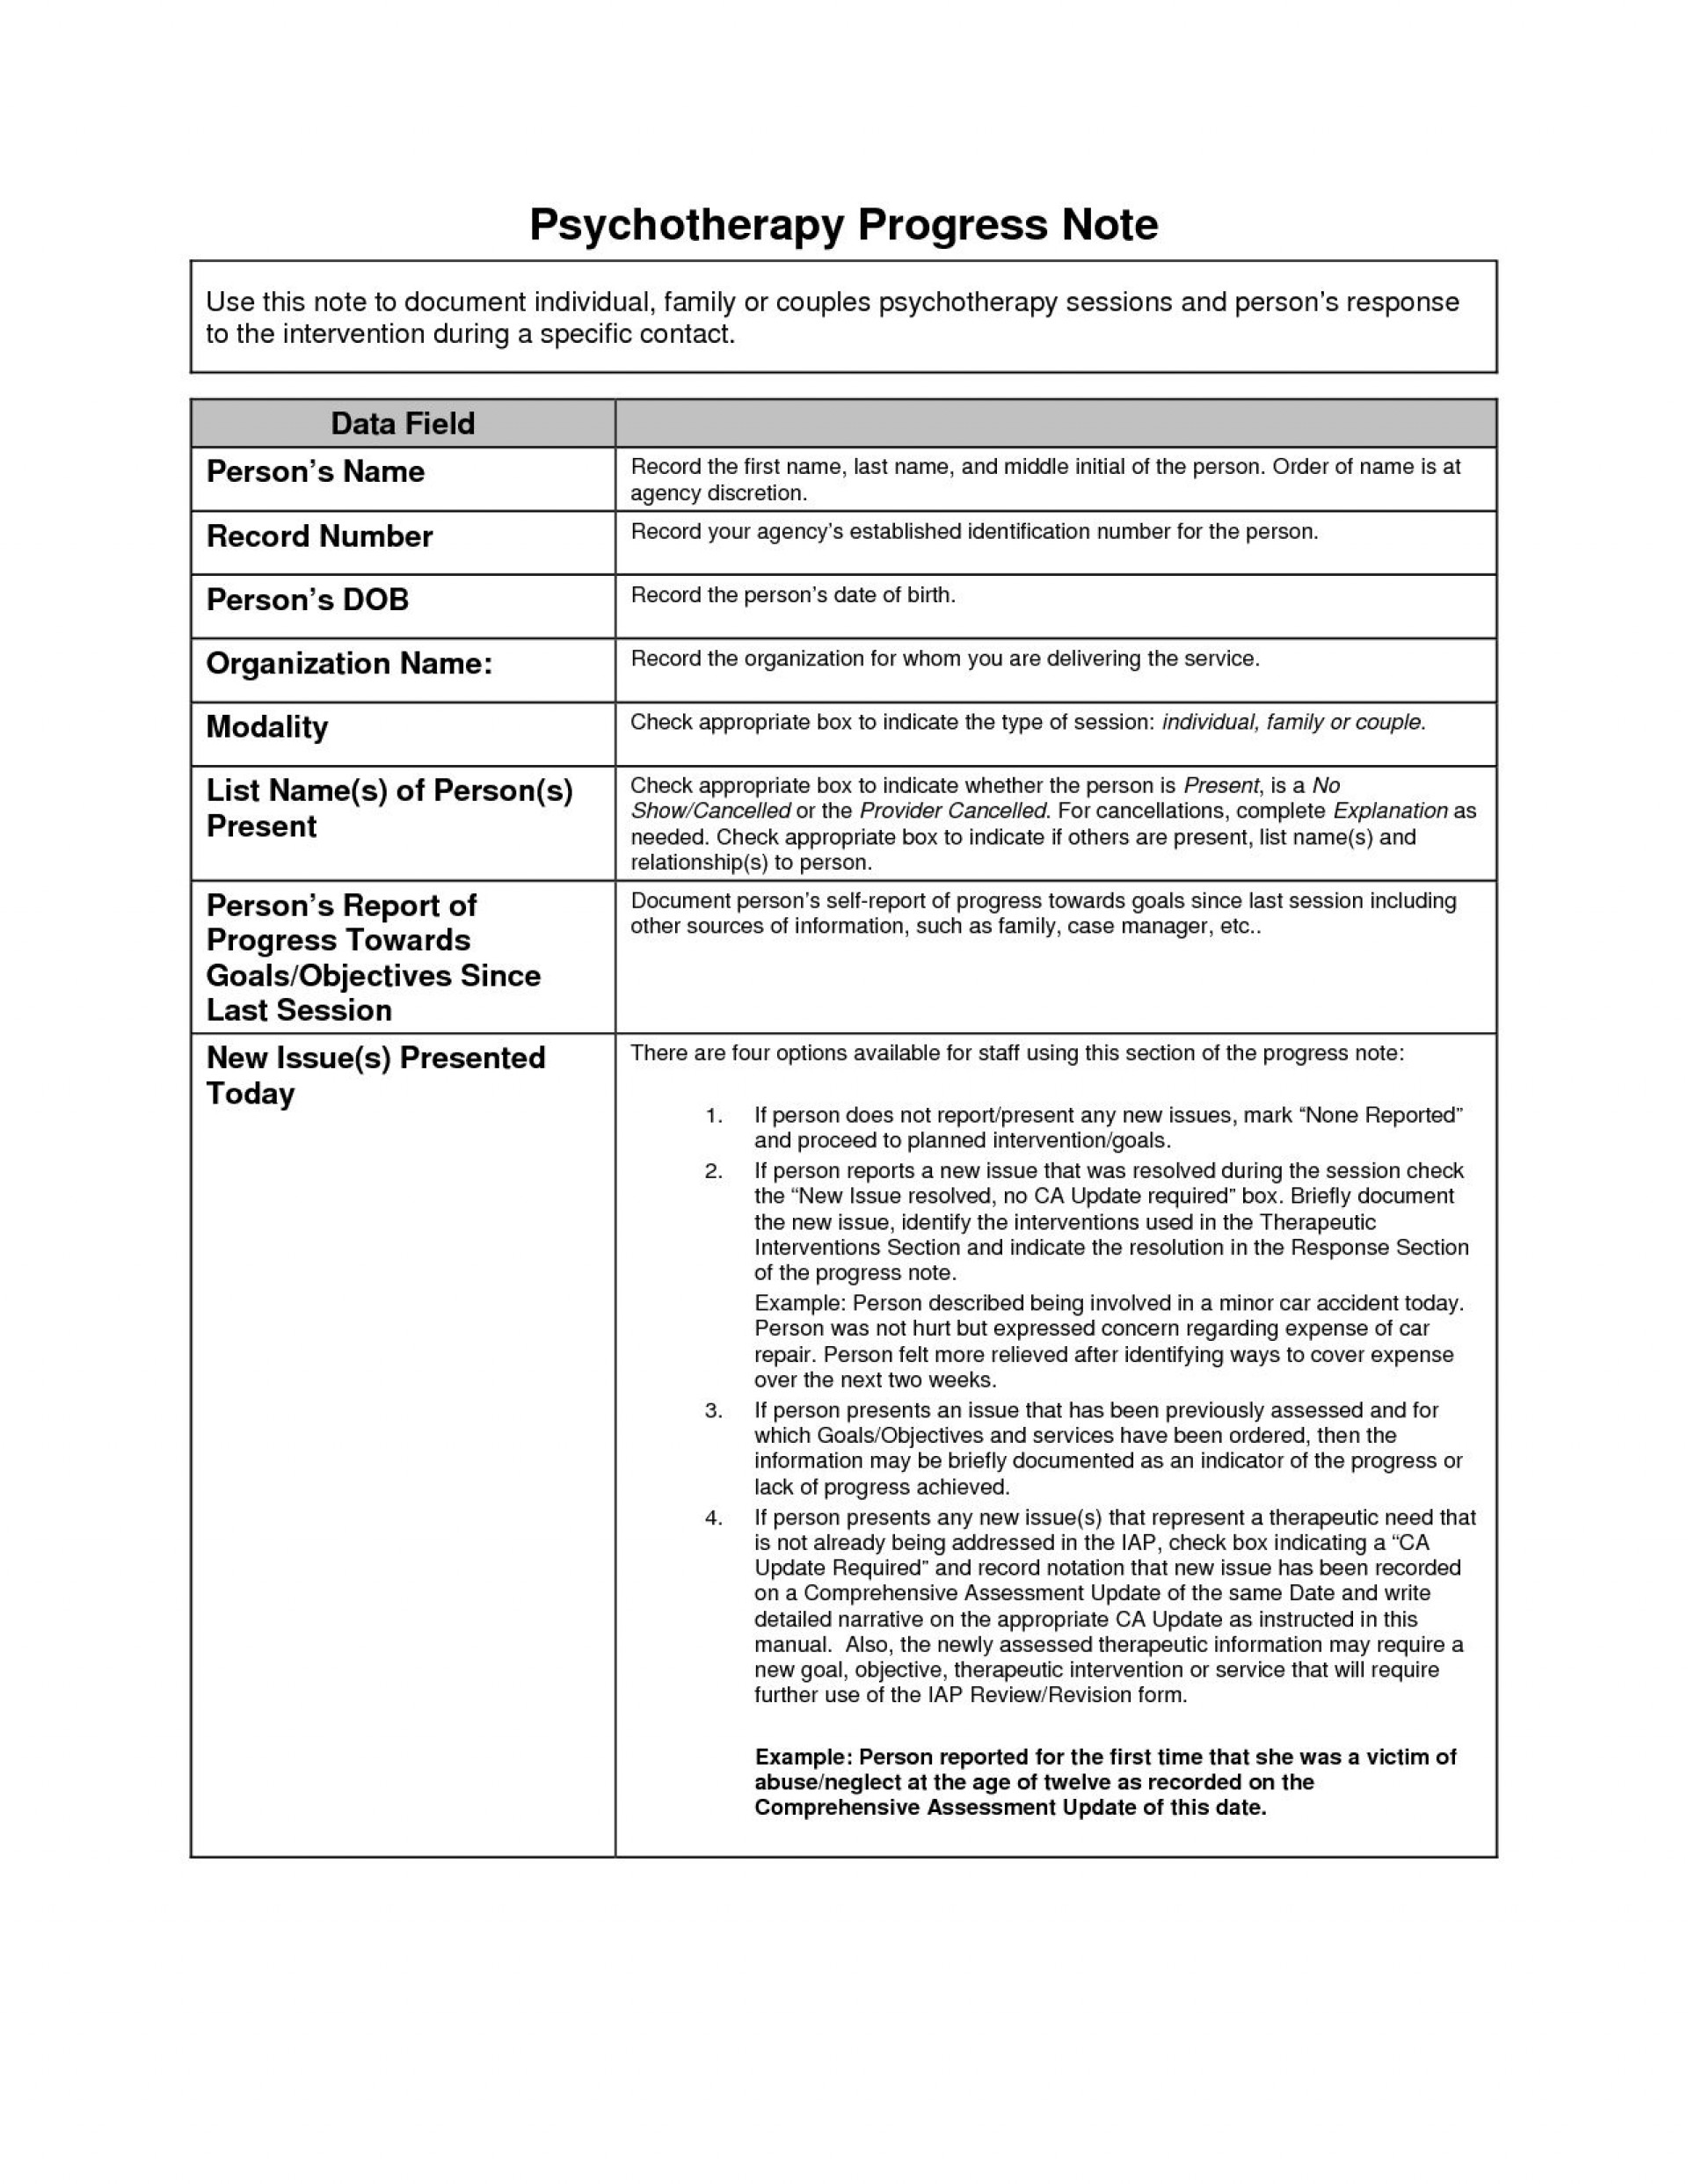 000 Awful Counseling Progres Note Template Image  Physical Therapy Pdf Free1920